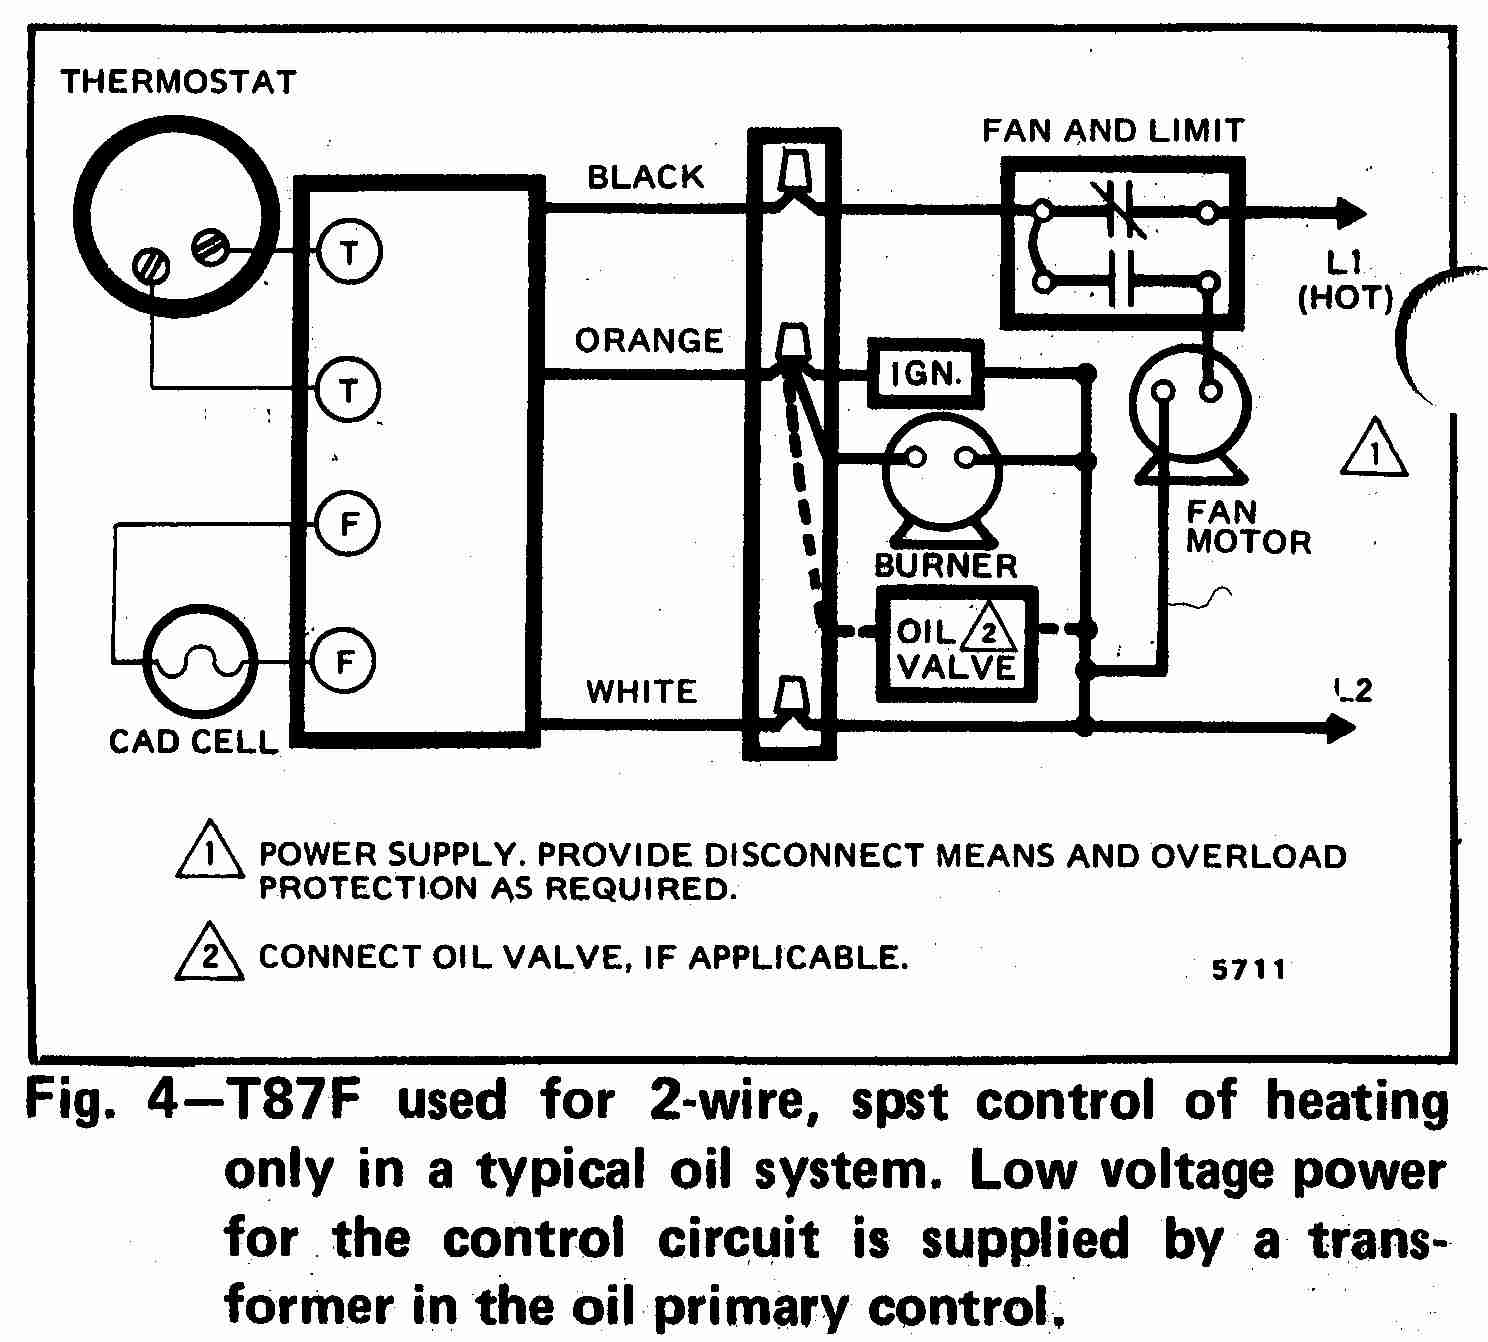 TT_T87F_0002_2W_DJF room thermostat wiring diagrams for hvac systems wiring diagram for dummies at eliteediting.co